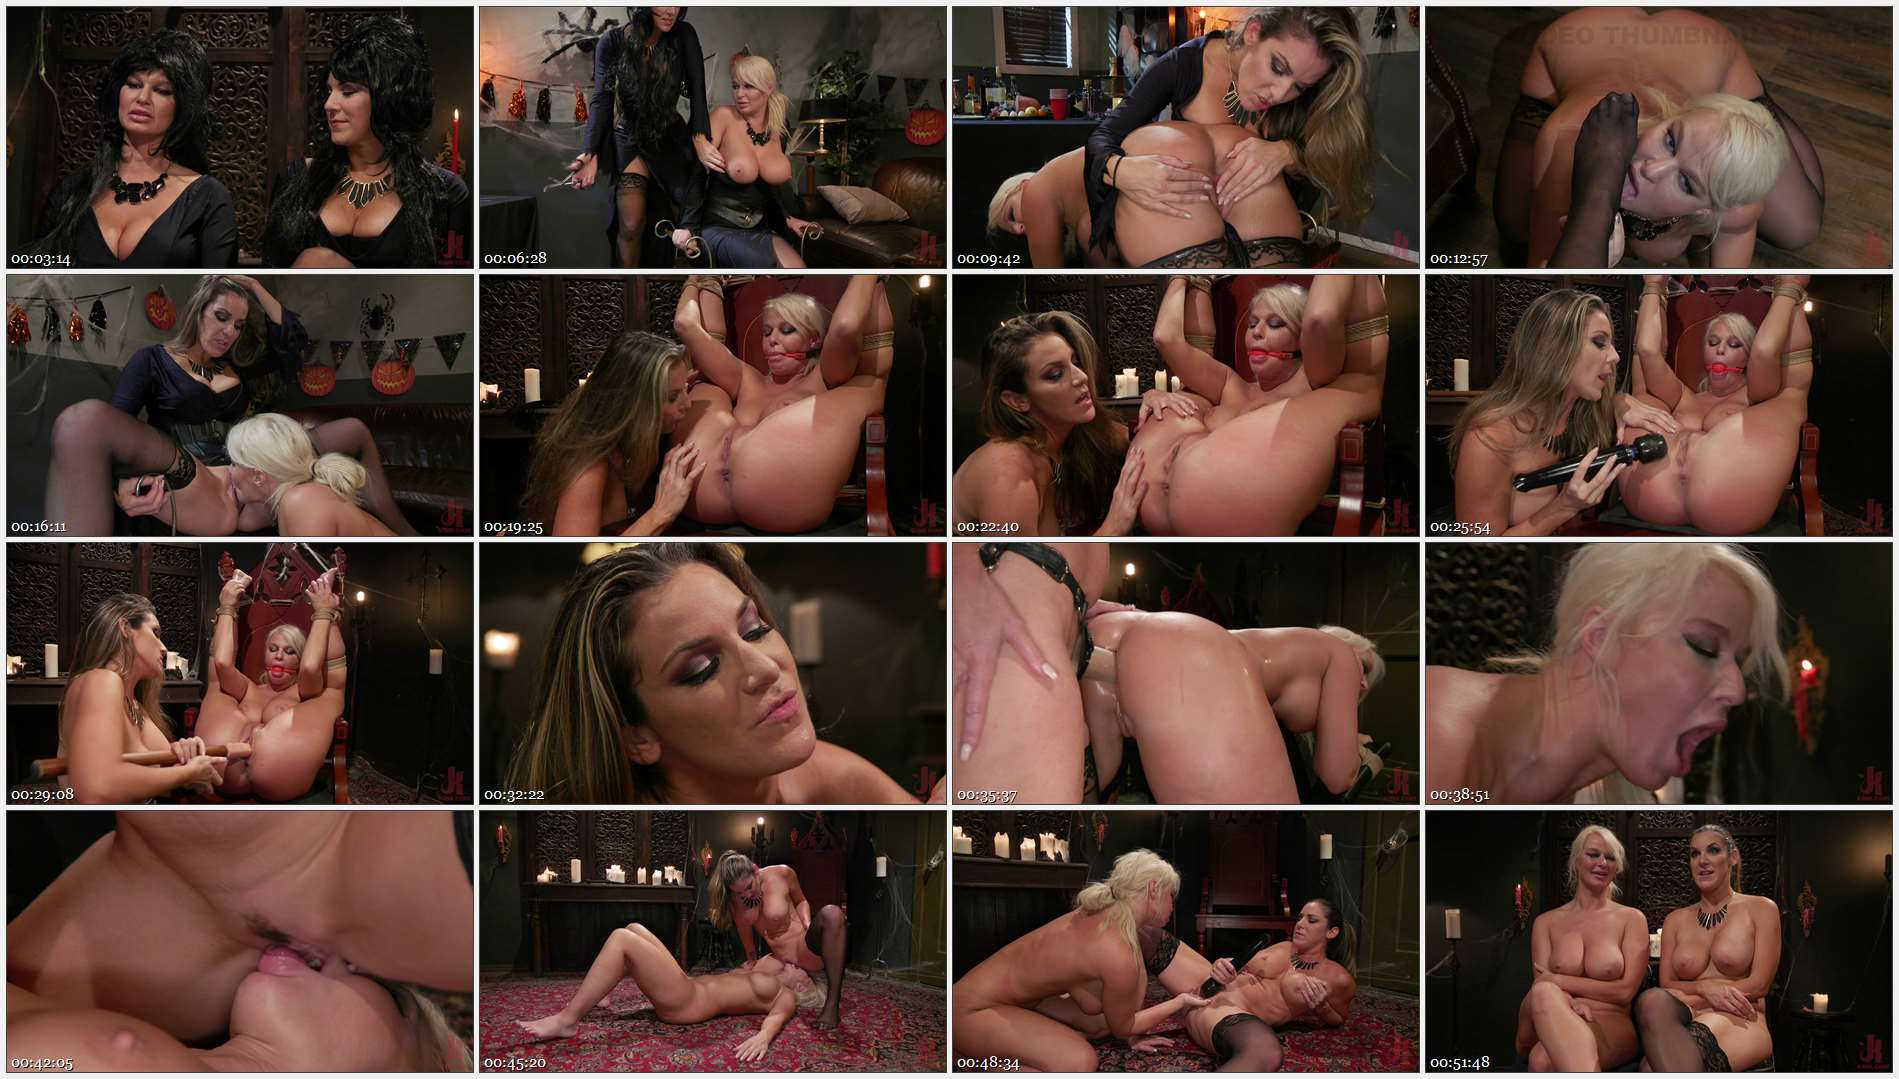 London River – Halloween Party Surprise: Kayla Paige Returns to Whipped Ass!